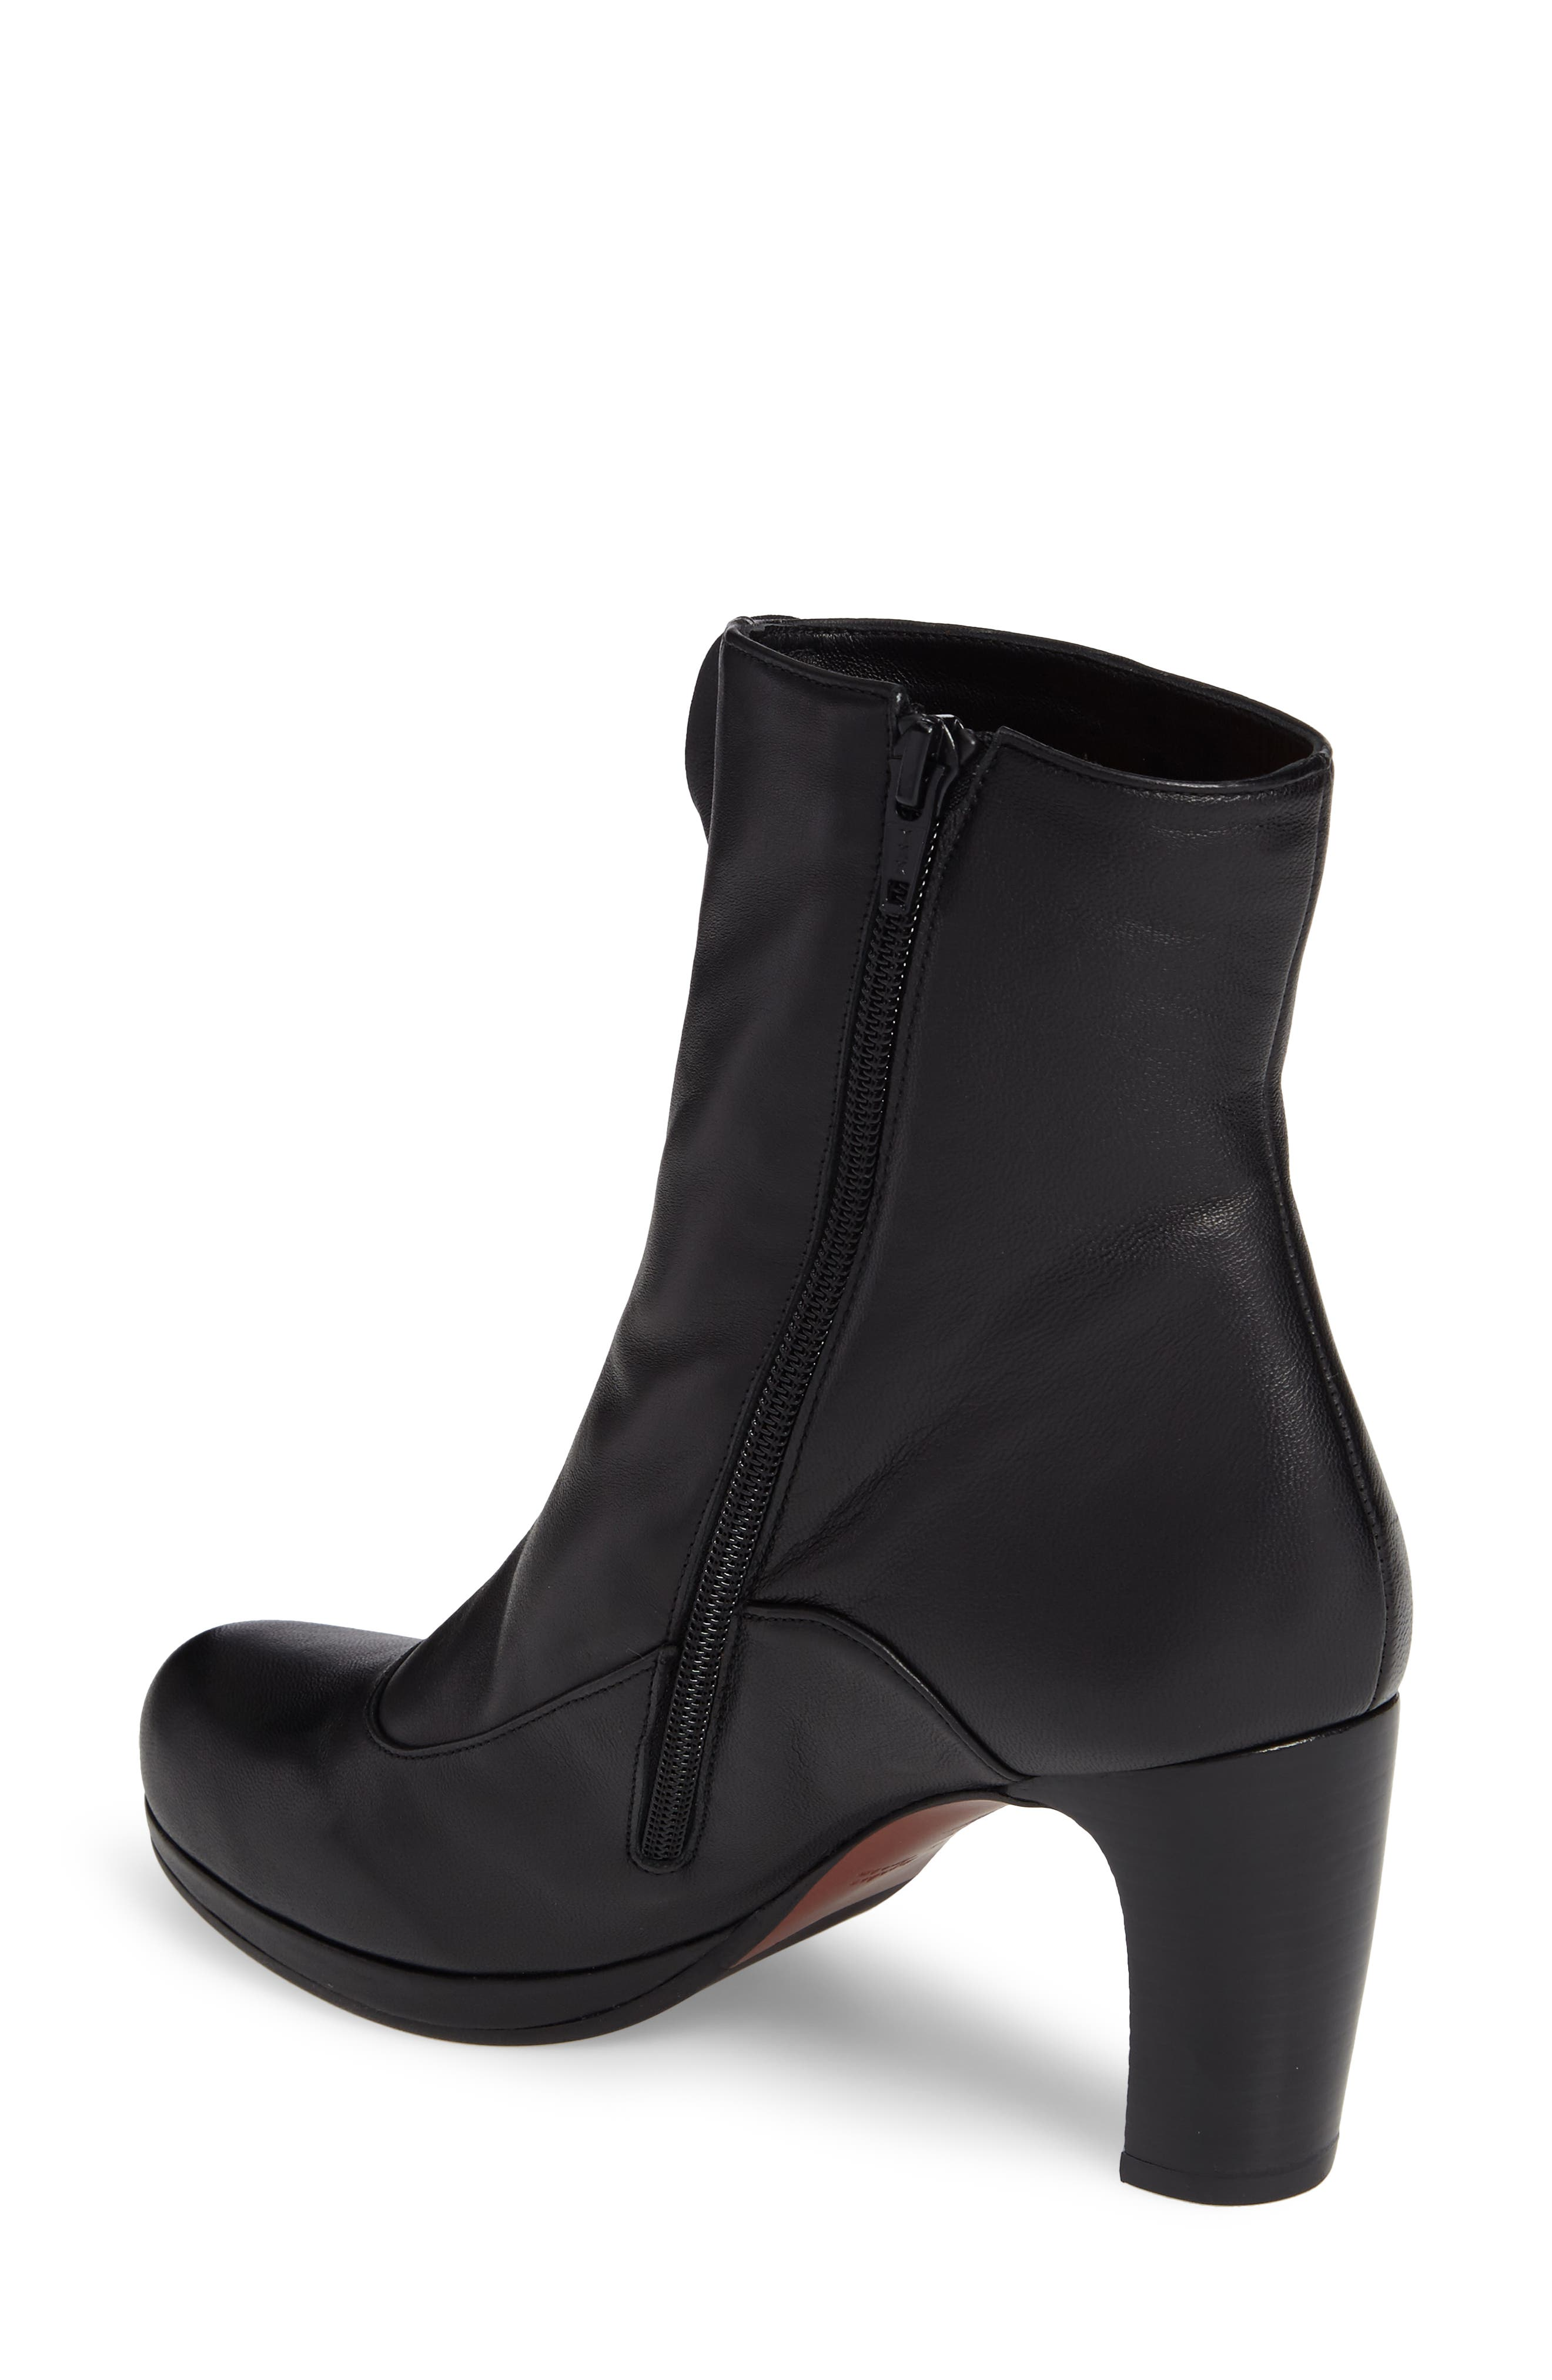 Picoli Ruffle Bootie,                             Alternate thumbnail 2, color,                             Negro